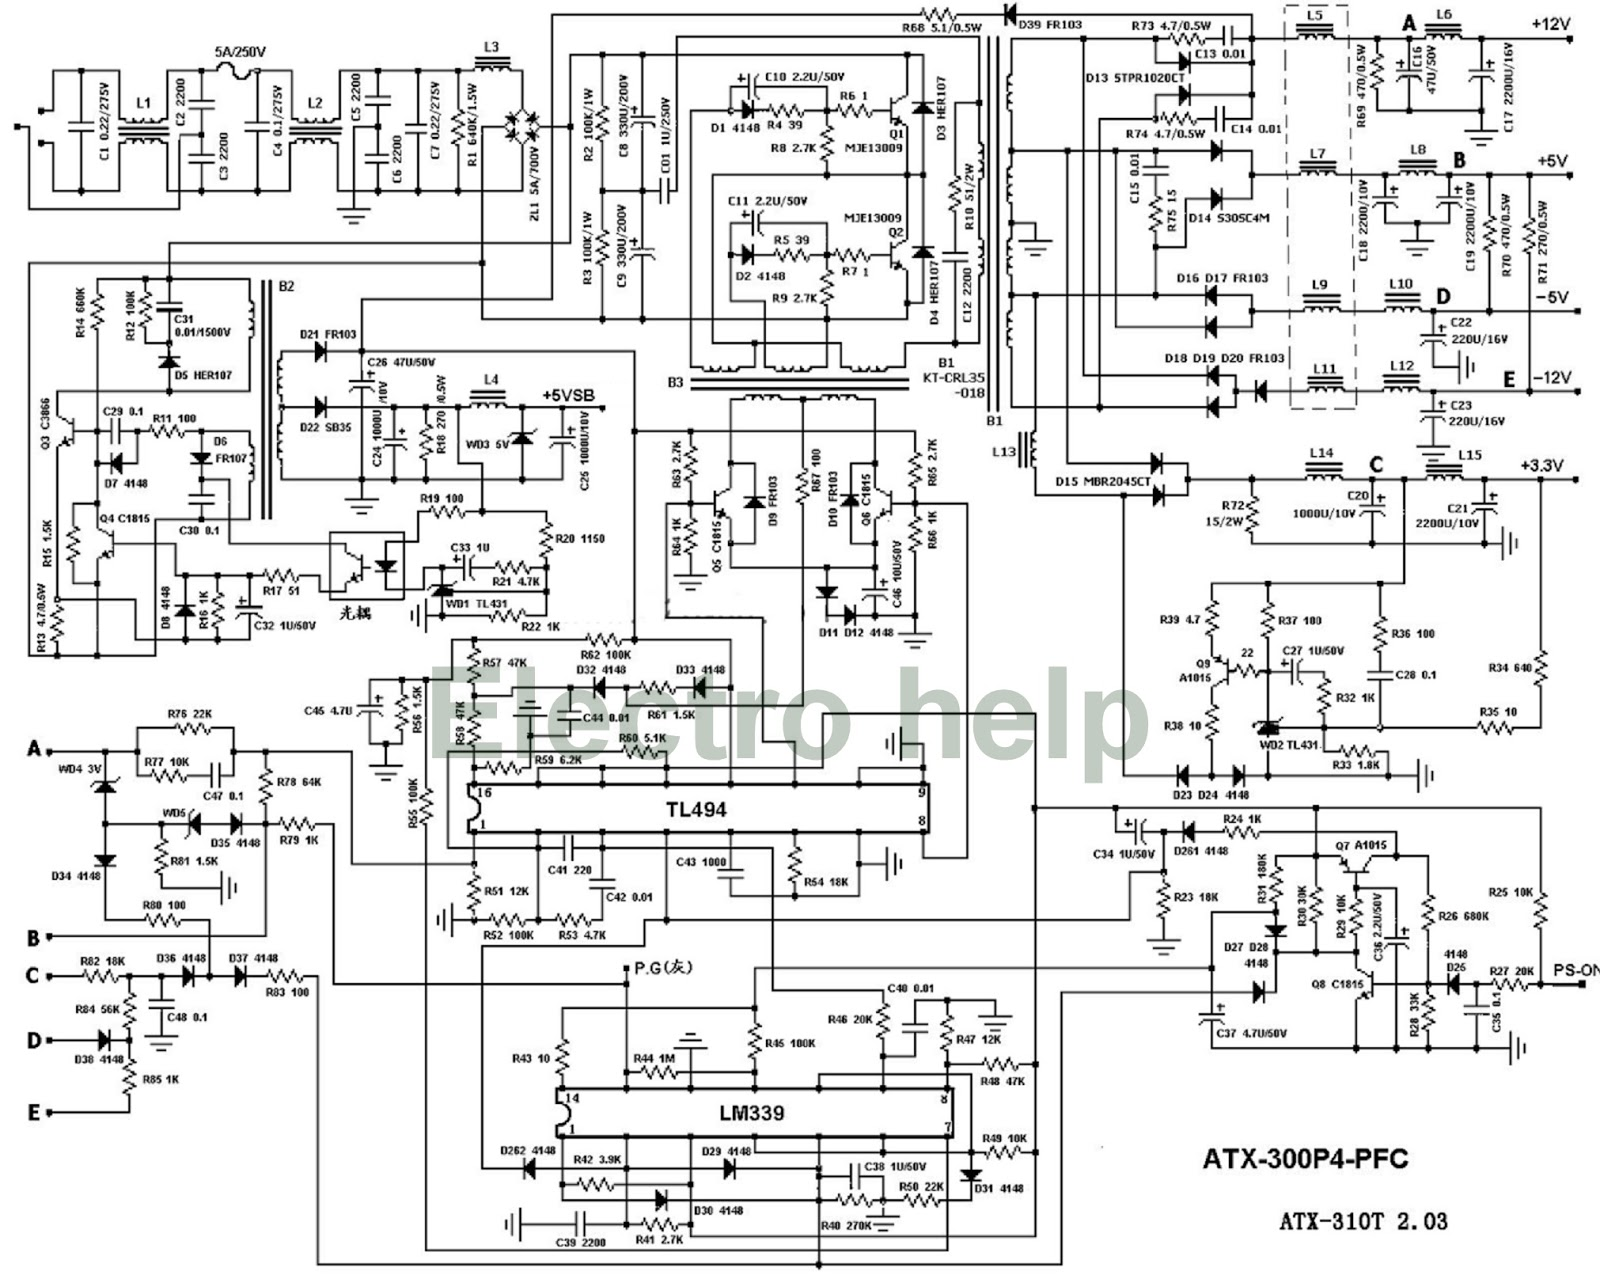 atx atx power supply desktop computers atx300p4 schematic atx power supply wiring diagram at aneh.co